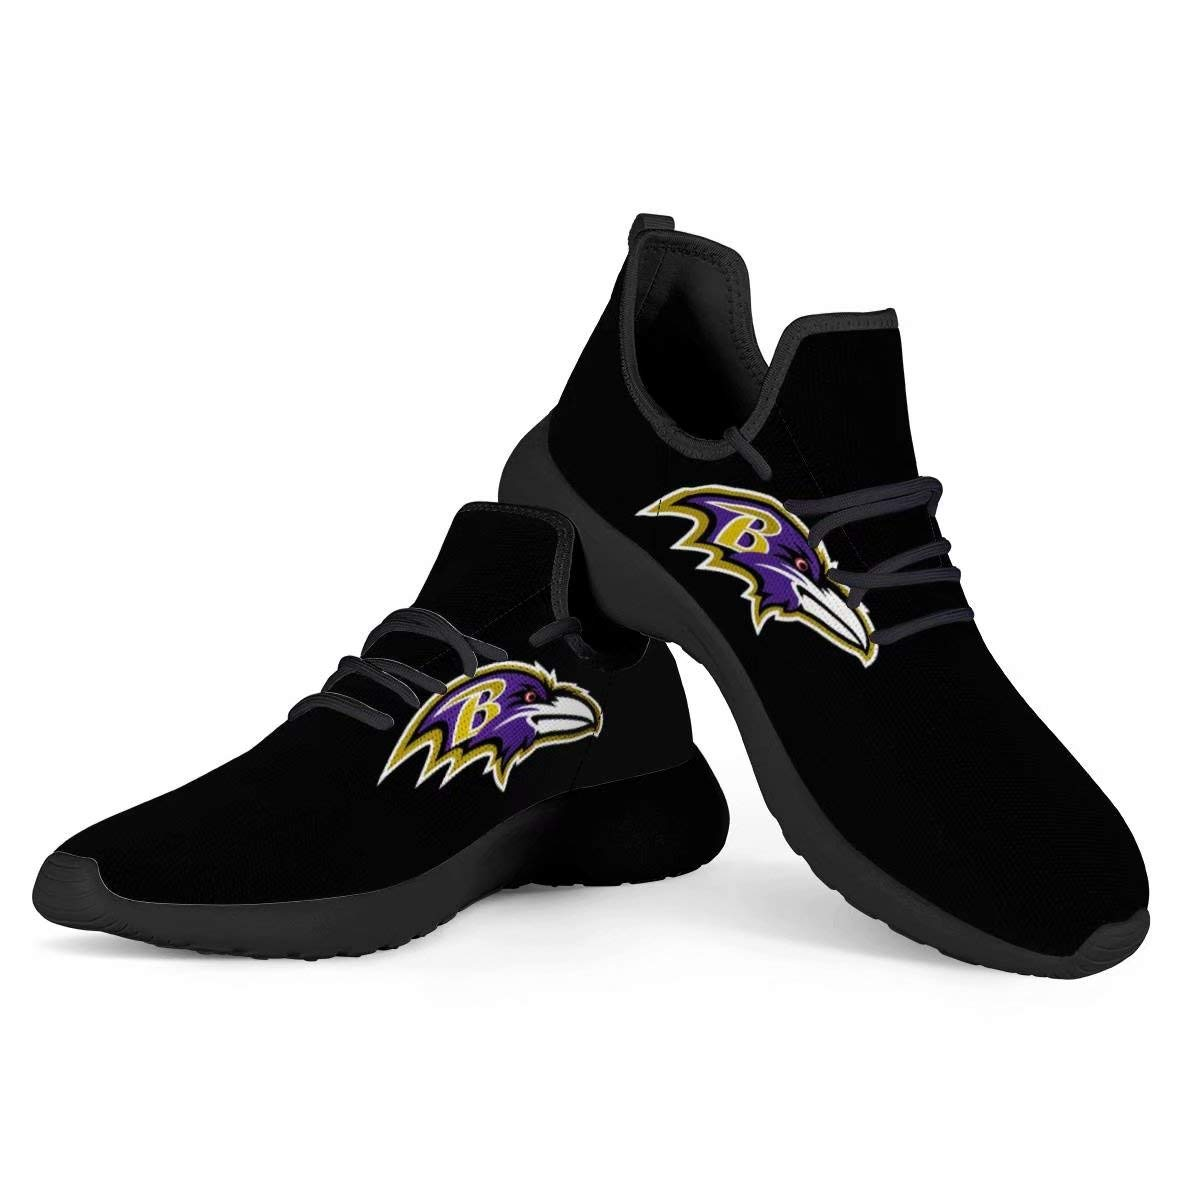 Baltimore Ravens Football Team Logo Walking Shoes Lightweight Running Shoes Fashion Breathable Sneakers Mesh Soft Sole Casual Athletic Lightweight for Men Women